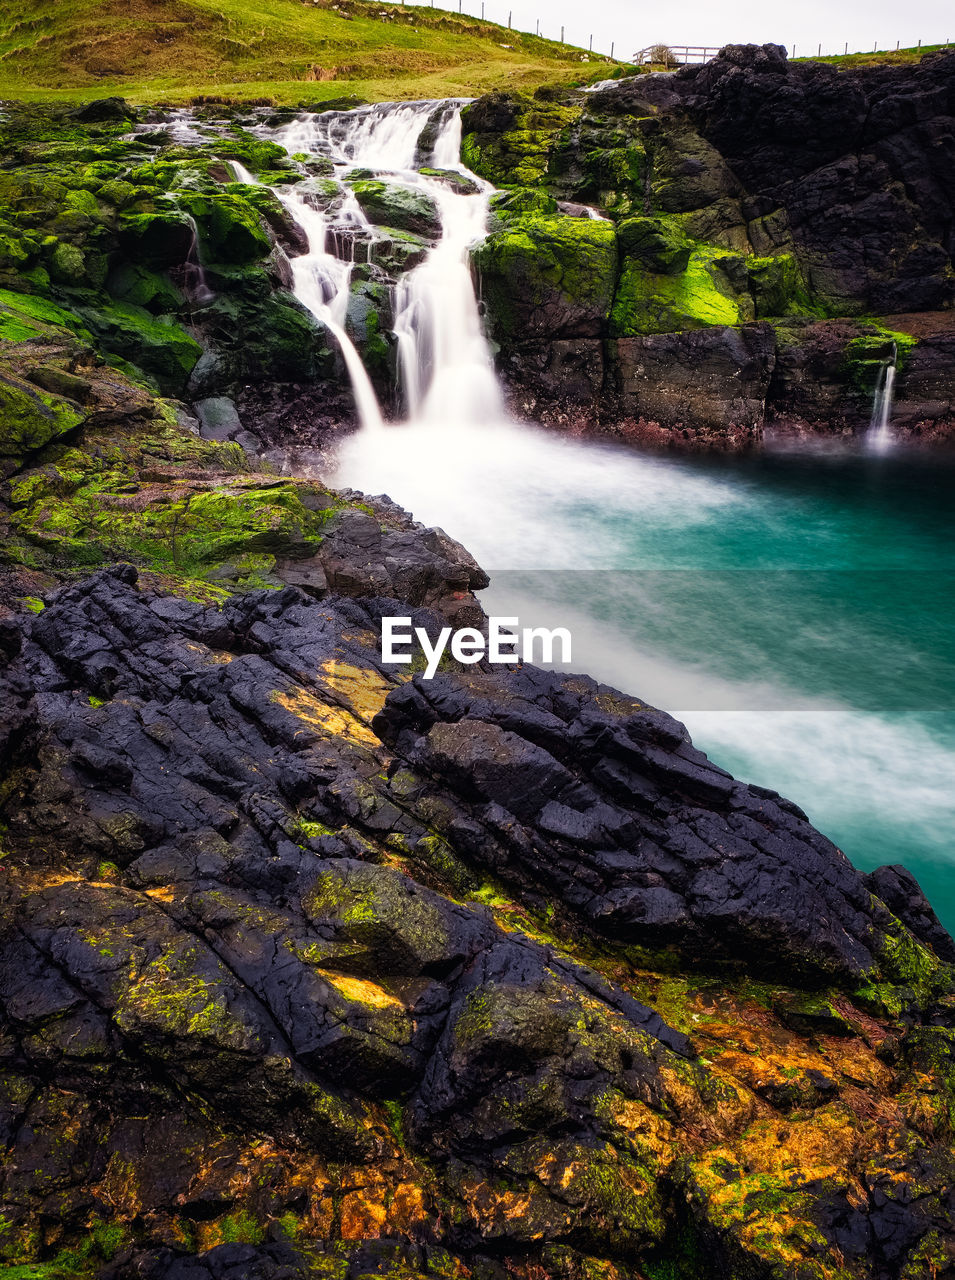 water, rock, rock - object, waterfall, scenics - nature, motion, solid, beauty in nature, long exposure, blurred motion, rock formation, flowing water, nature, power, power in nature, land, non-urban scene, no people, forest, outdoors, flowing, falling water, purity